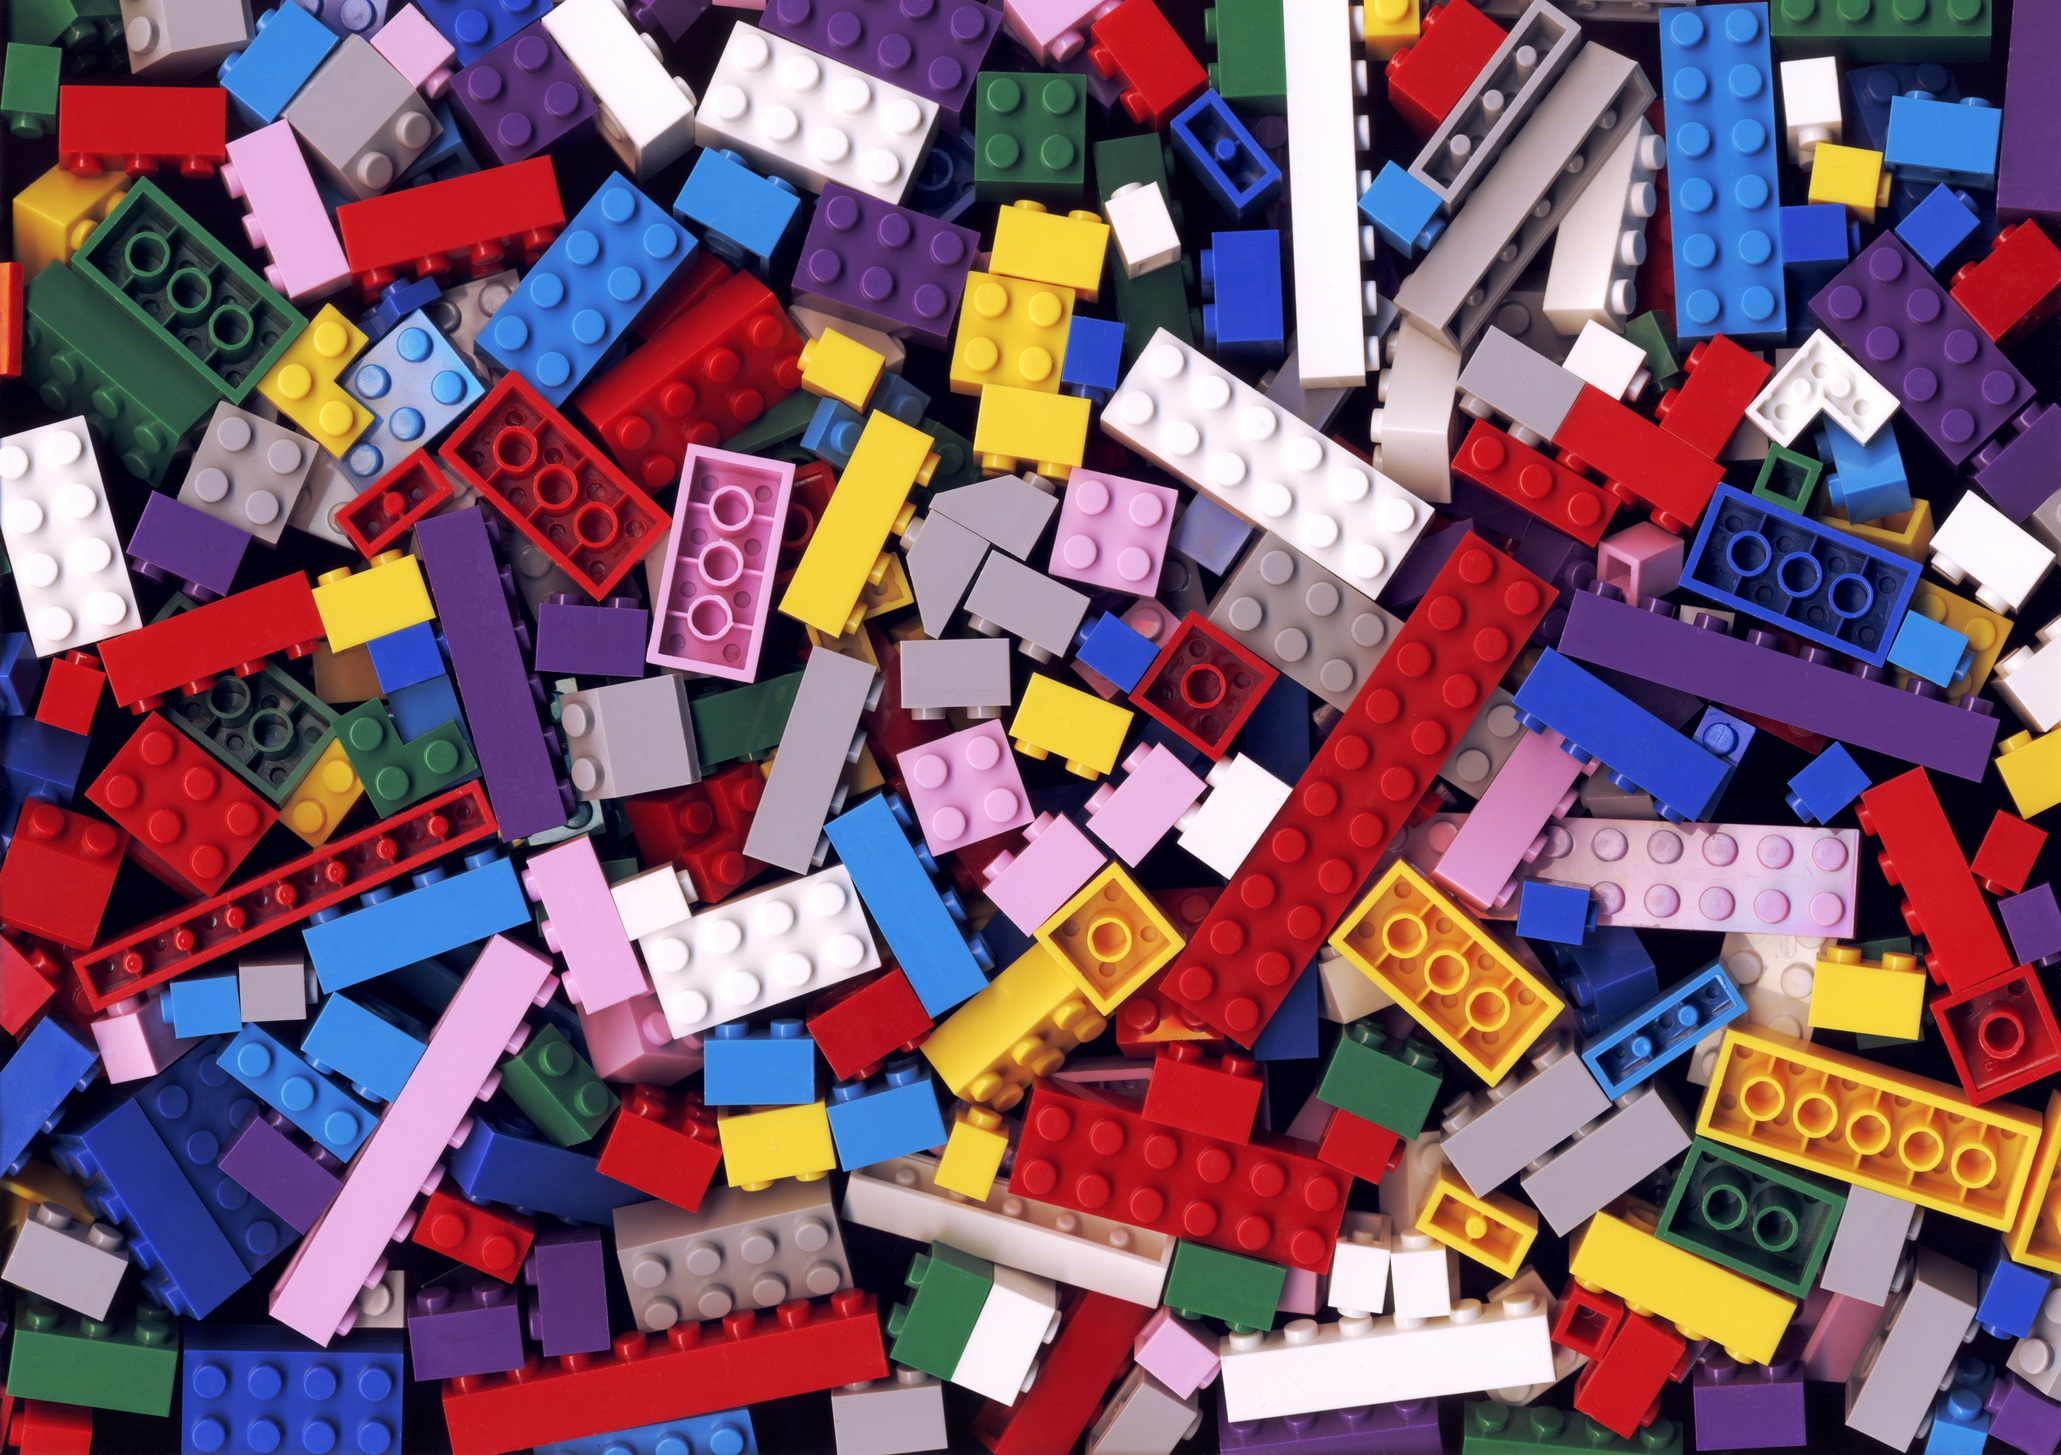 Lot of various colorful Lego blocks background